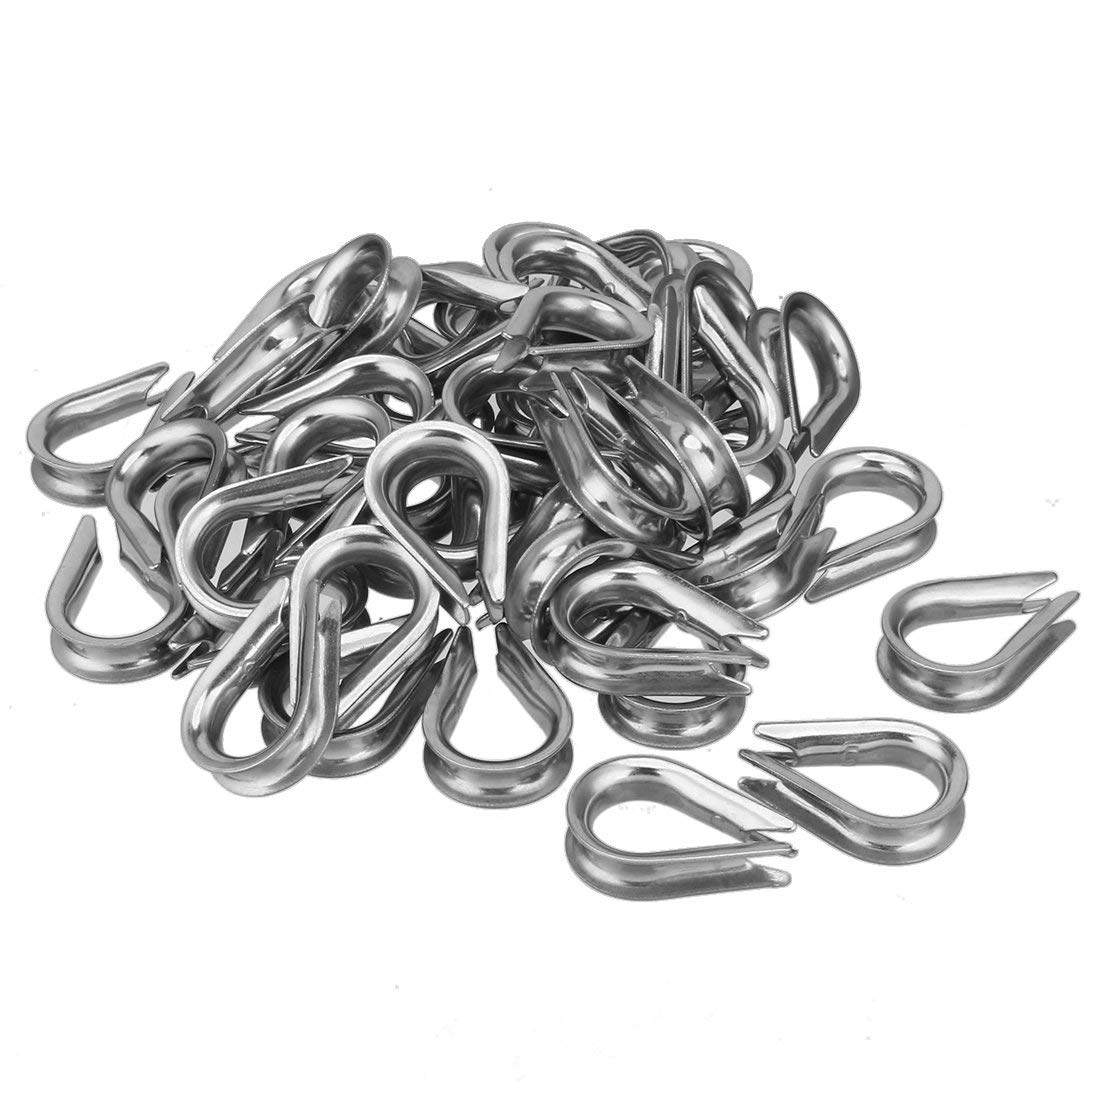 uxcell 304 Stainless Steel Thimble for Diameter Wire Rope 10pcs